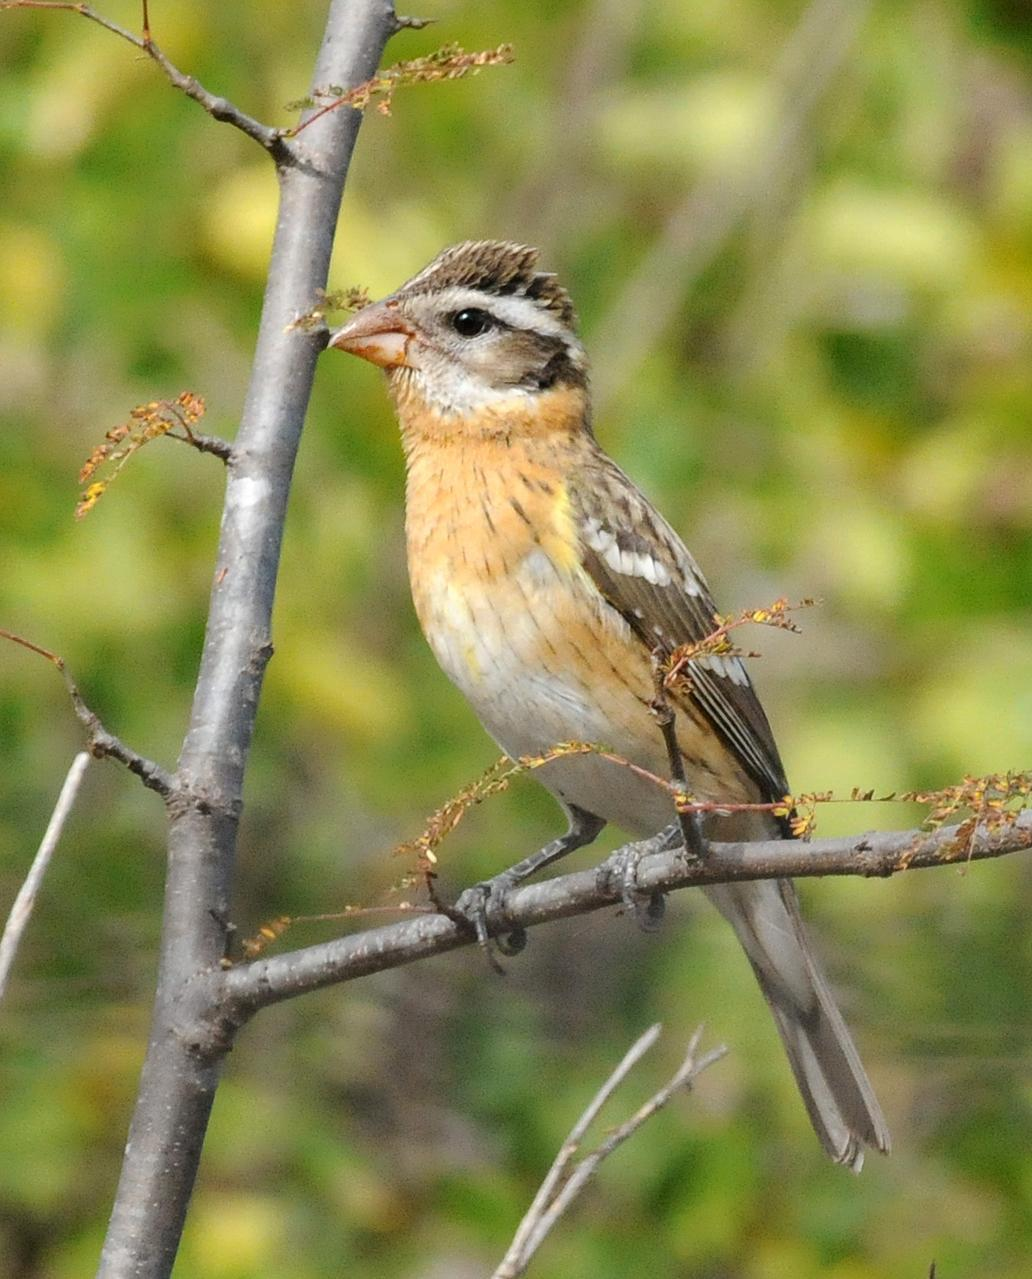 Black-headed Grosbeak Photo by Steven Mlodinow